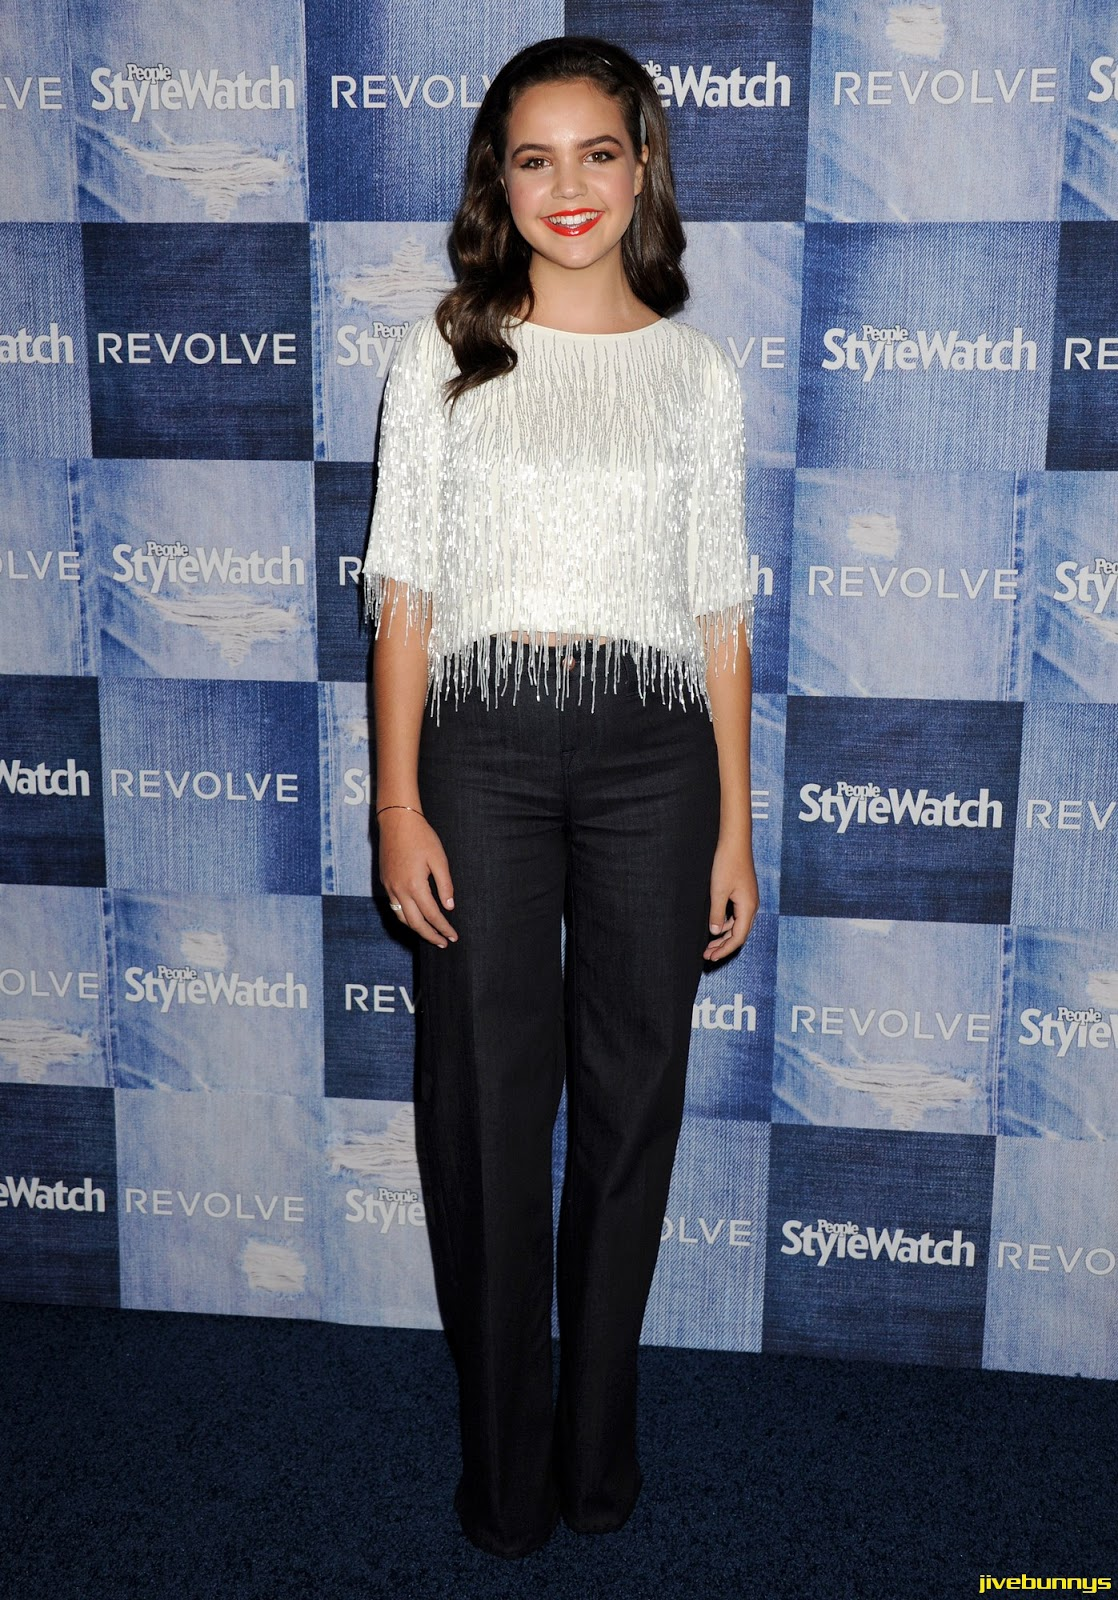 Bailee Madison - People StyleWatch 4th Annual Denim party in LA 09/18/14